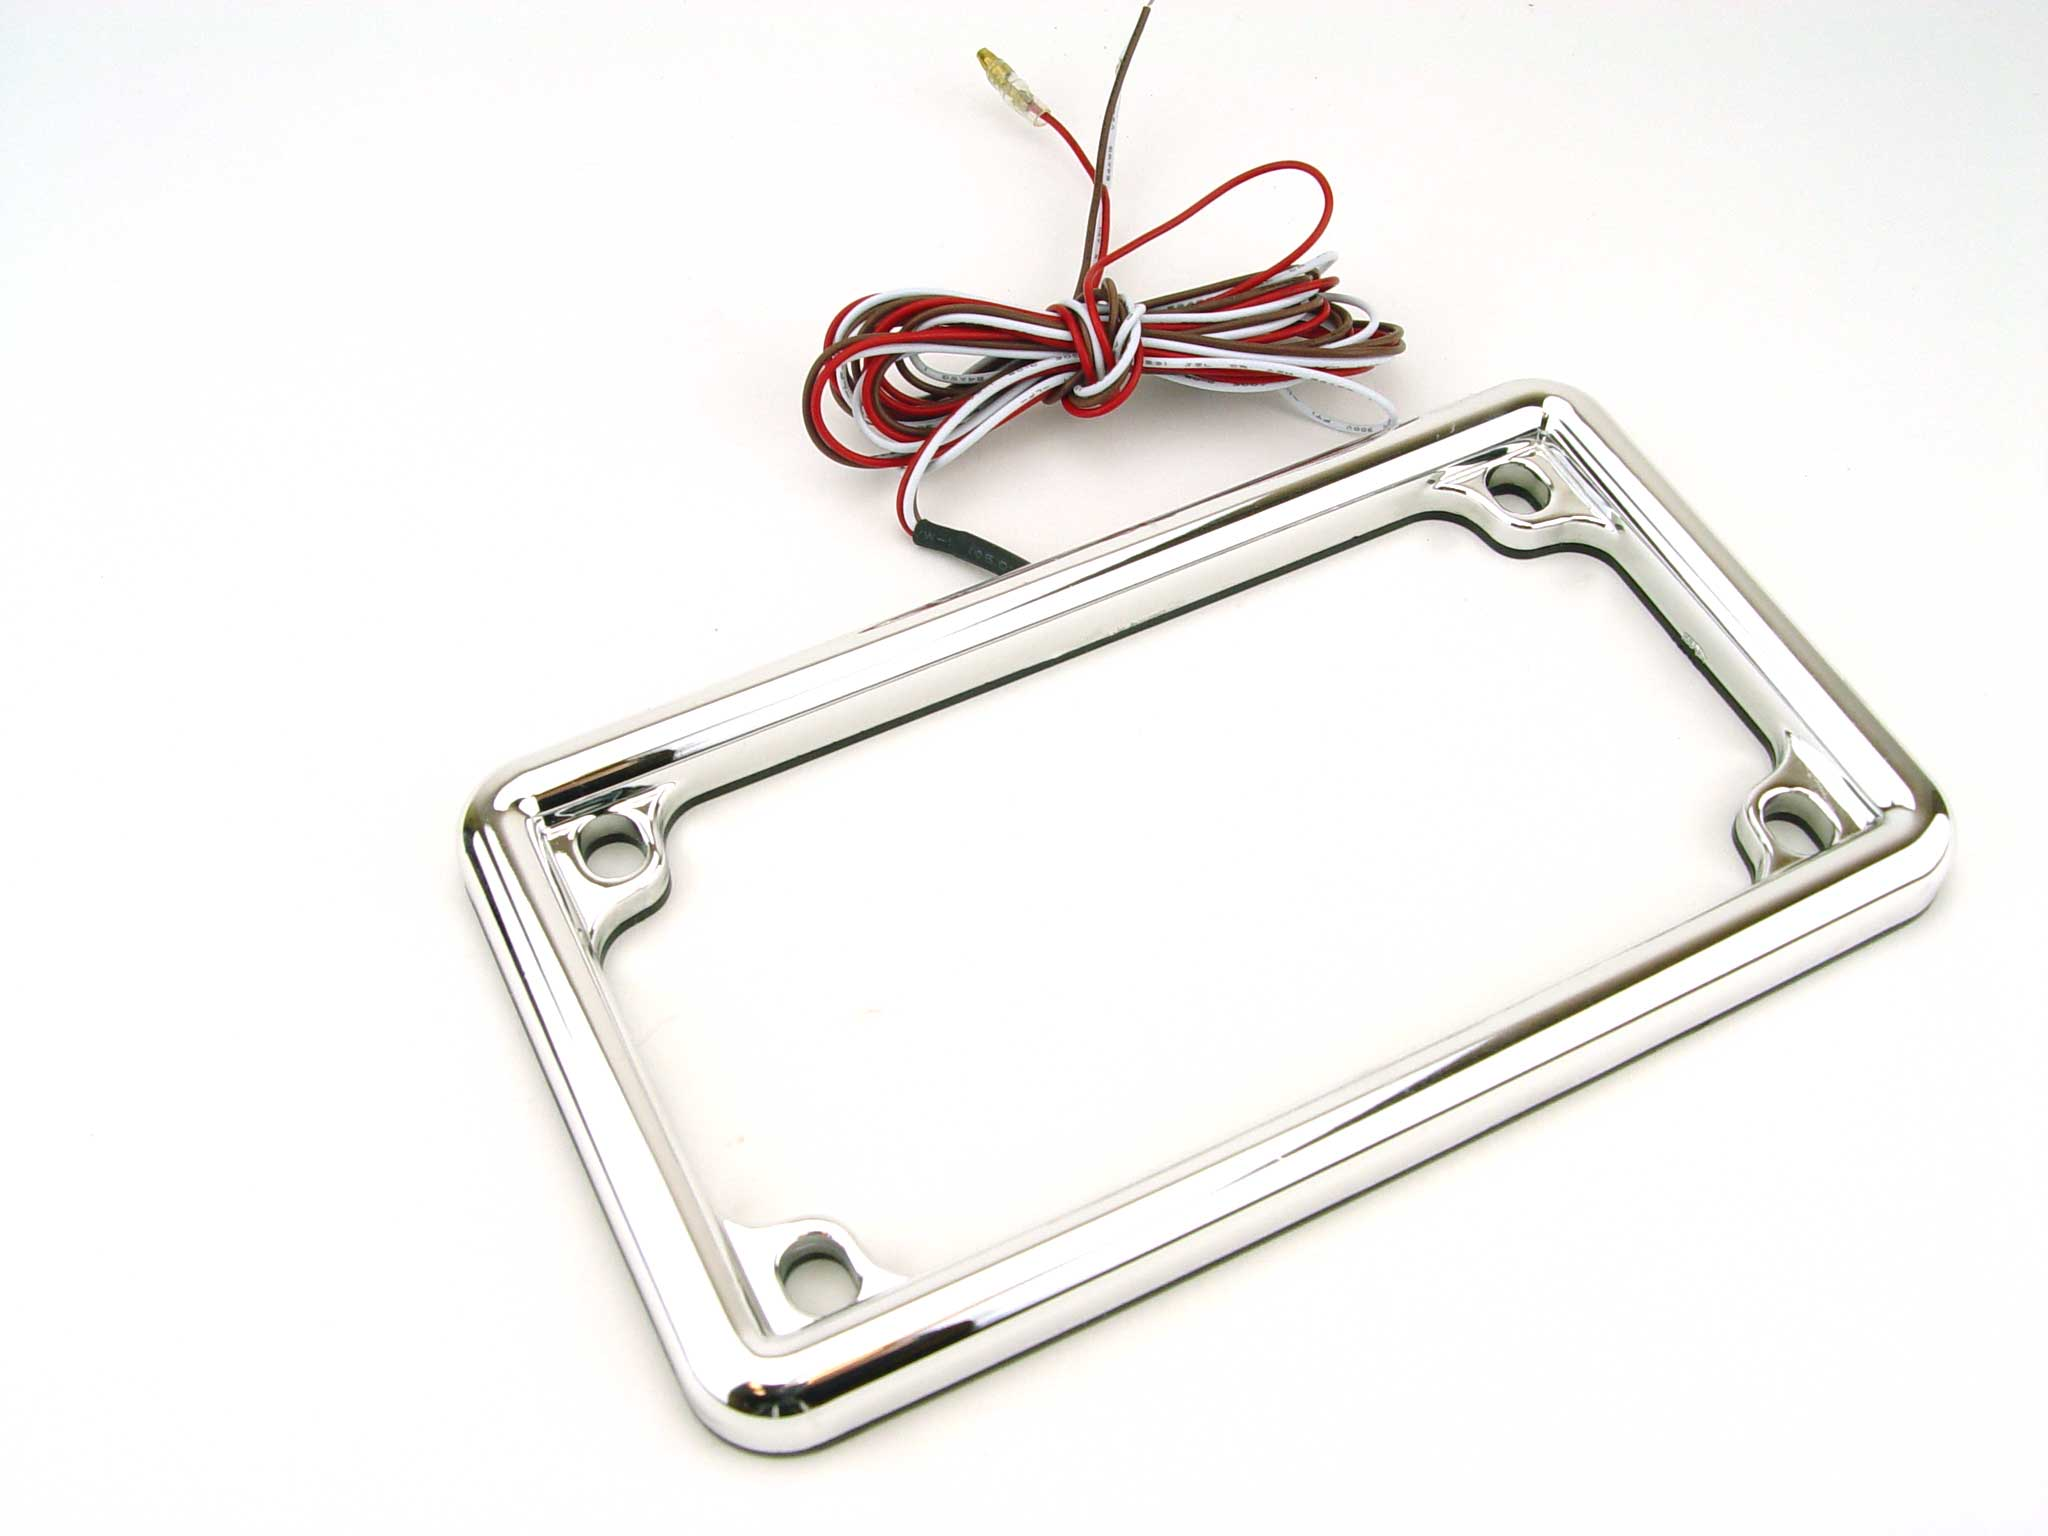 BOSSWELL 6671 LED Lighted Motorcycle License Frame Cover - Chrome